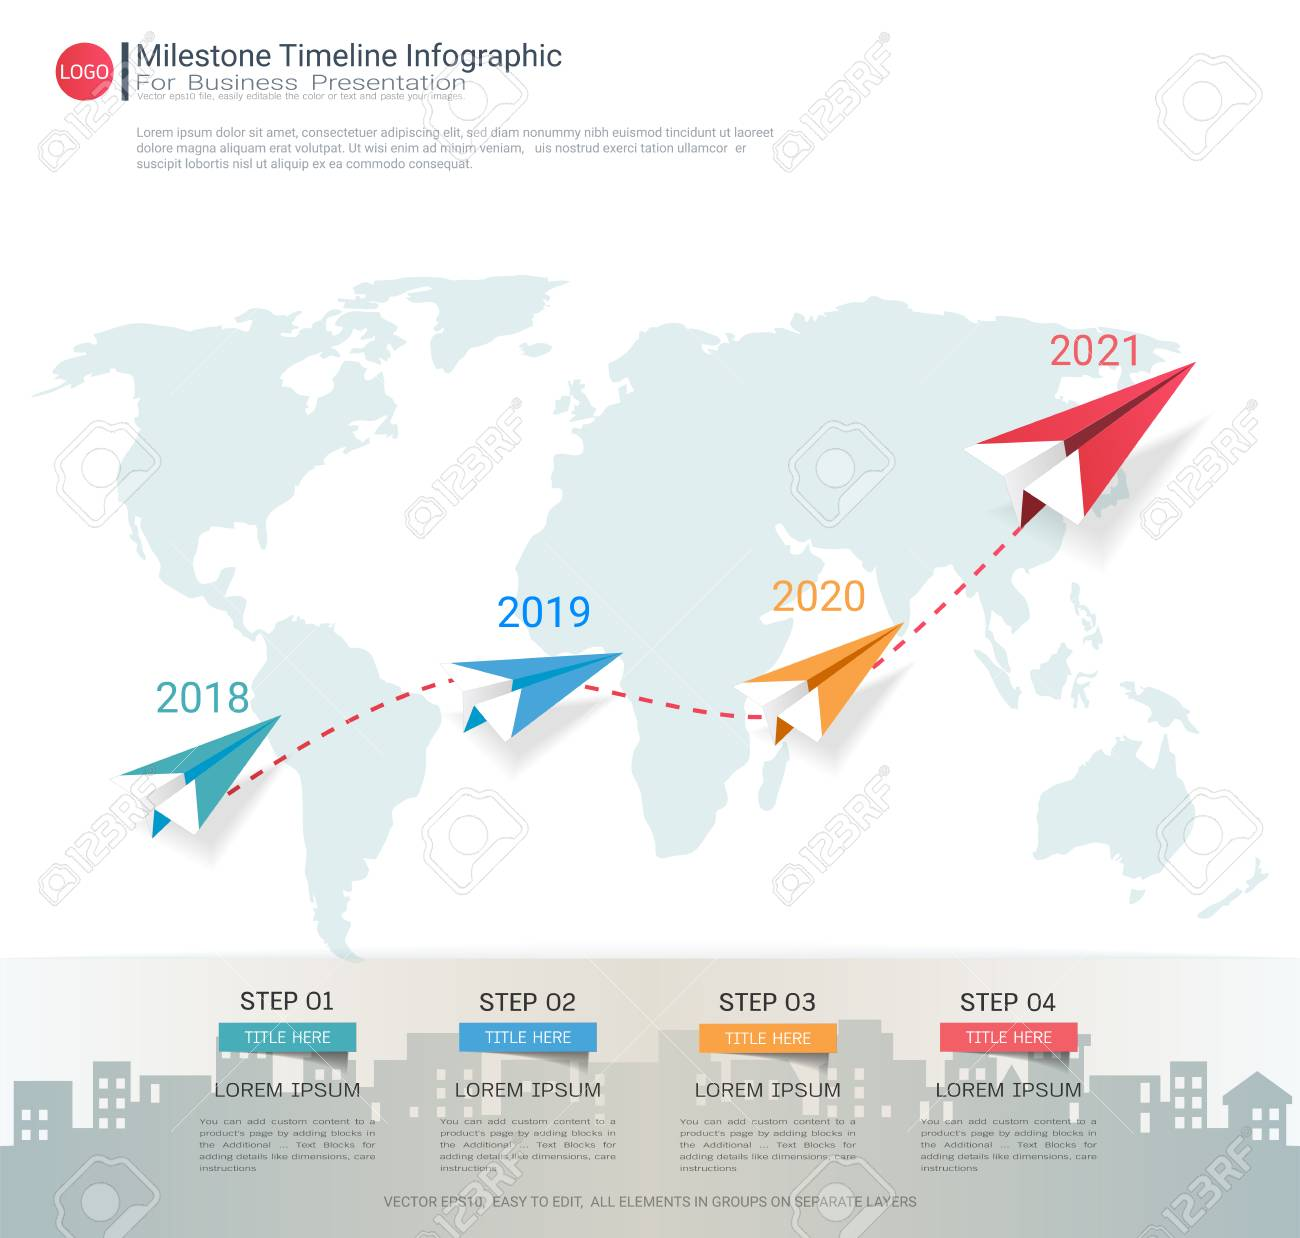 Milestone Timeline Infographic Design, Road Map Or Strategic ... on